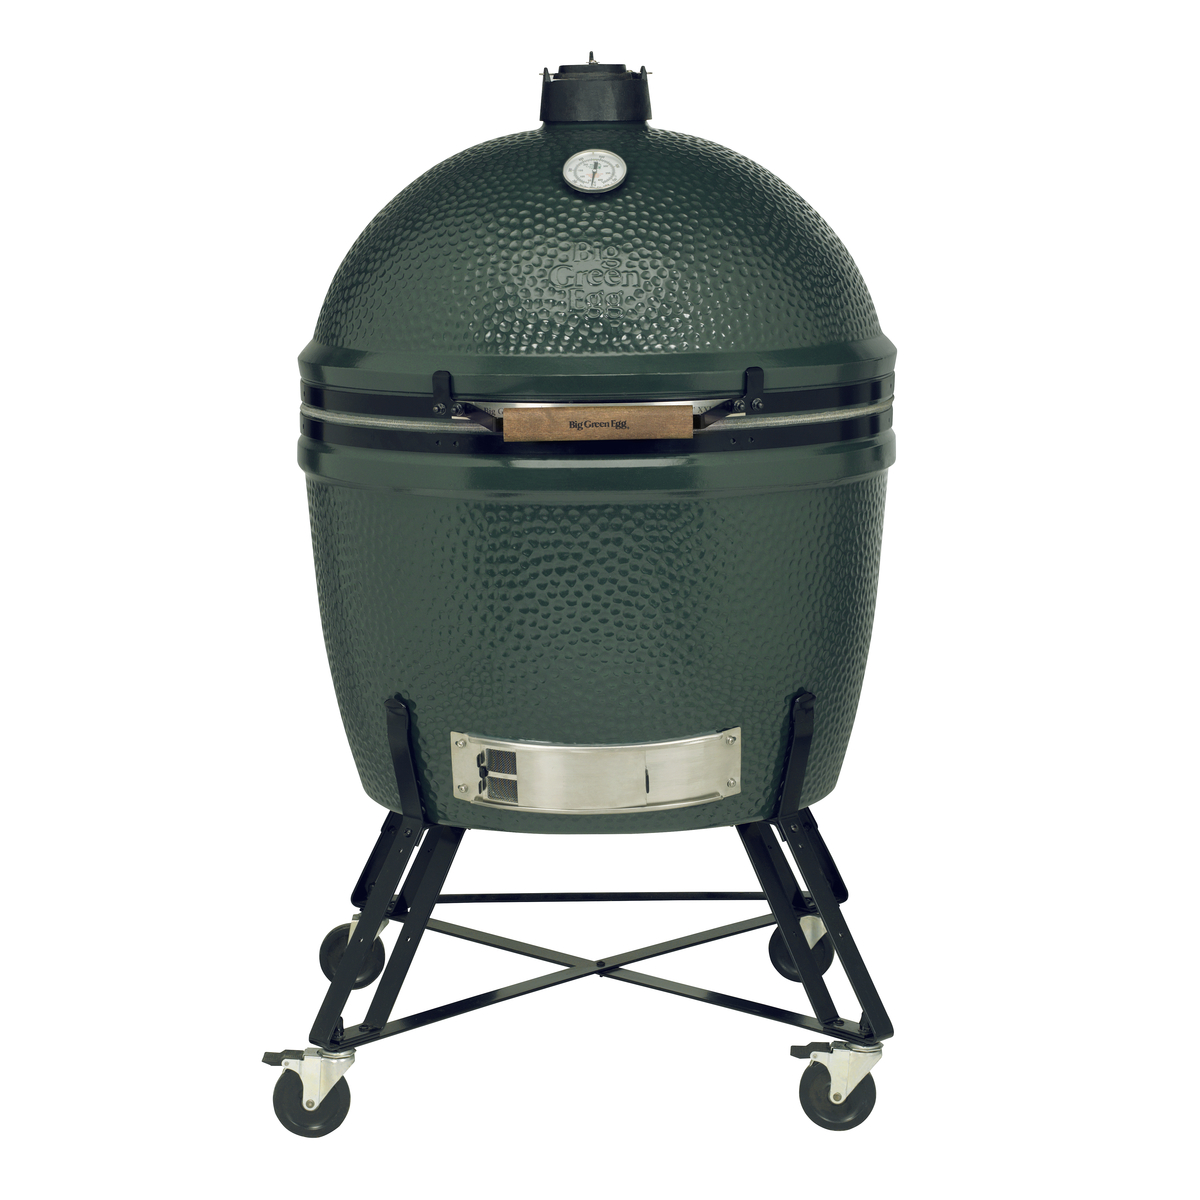 big green egg grills equipment eatventure. Black Bedroom Furniture Sets. Home Design Ideas